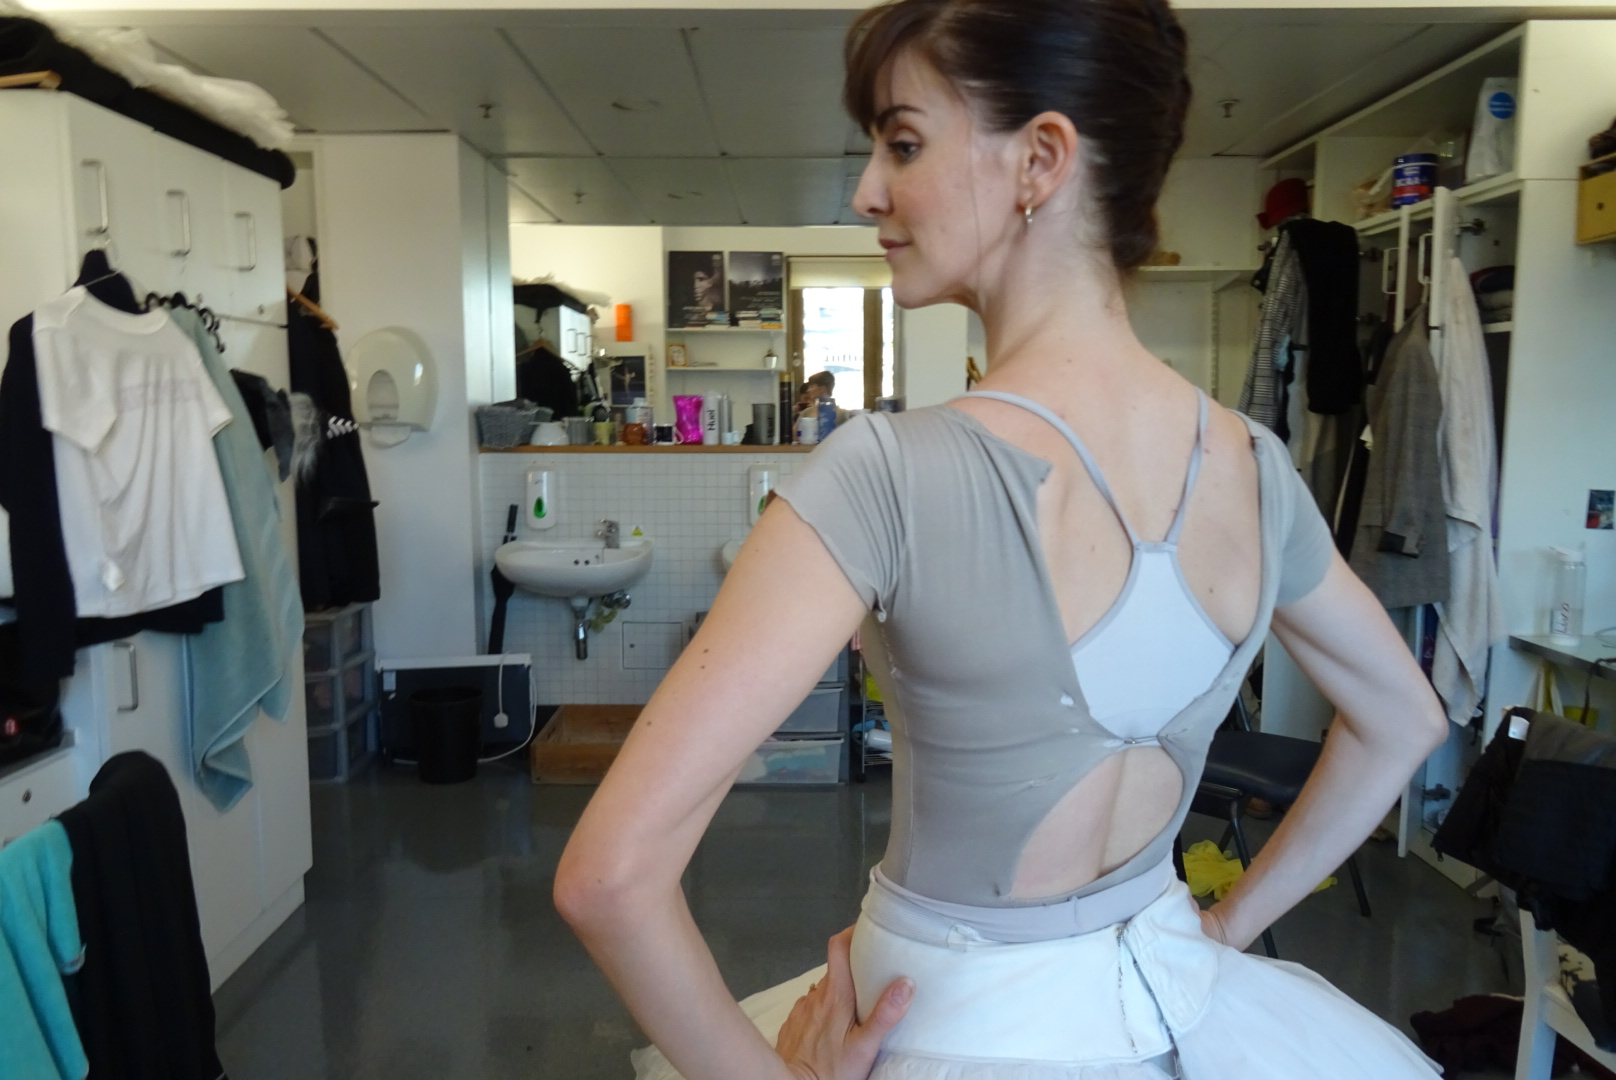 Old leotard held together by a safety pin. Chosen a crop top with an unusual back design.